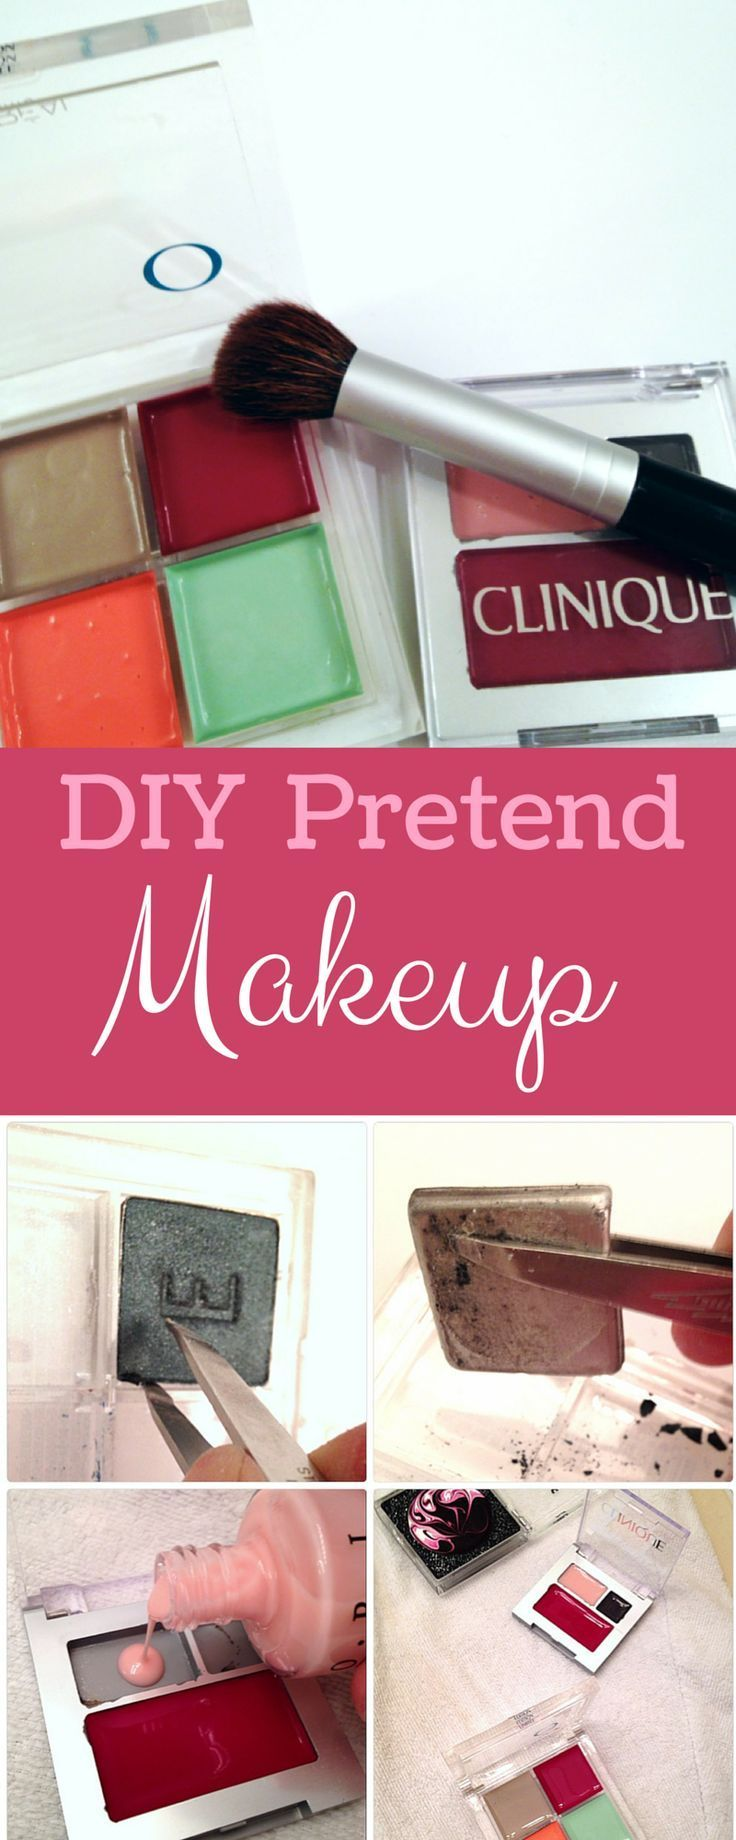 Turn your old makeup into fun pretend play for your toddler! This was a huge hit with my daughter and so easy to make!